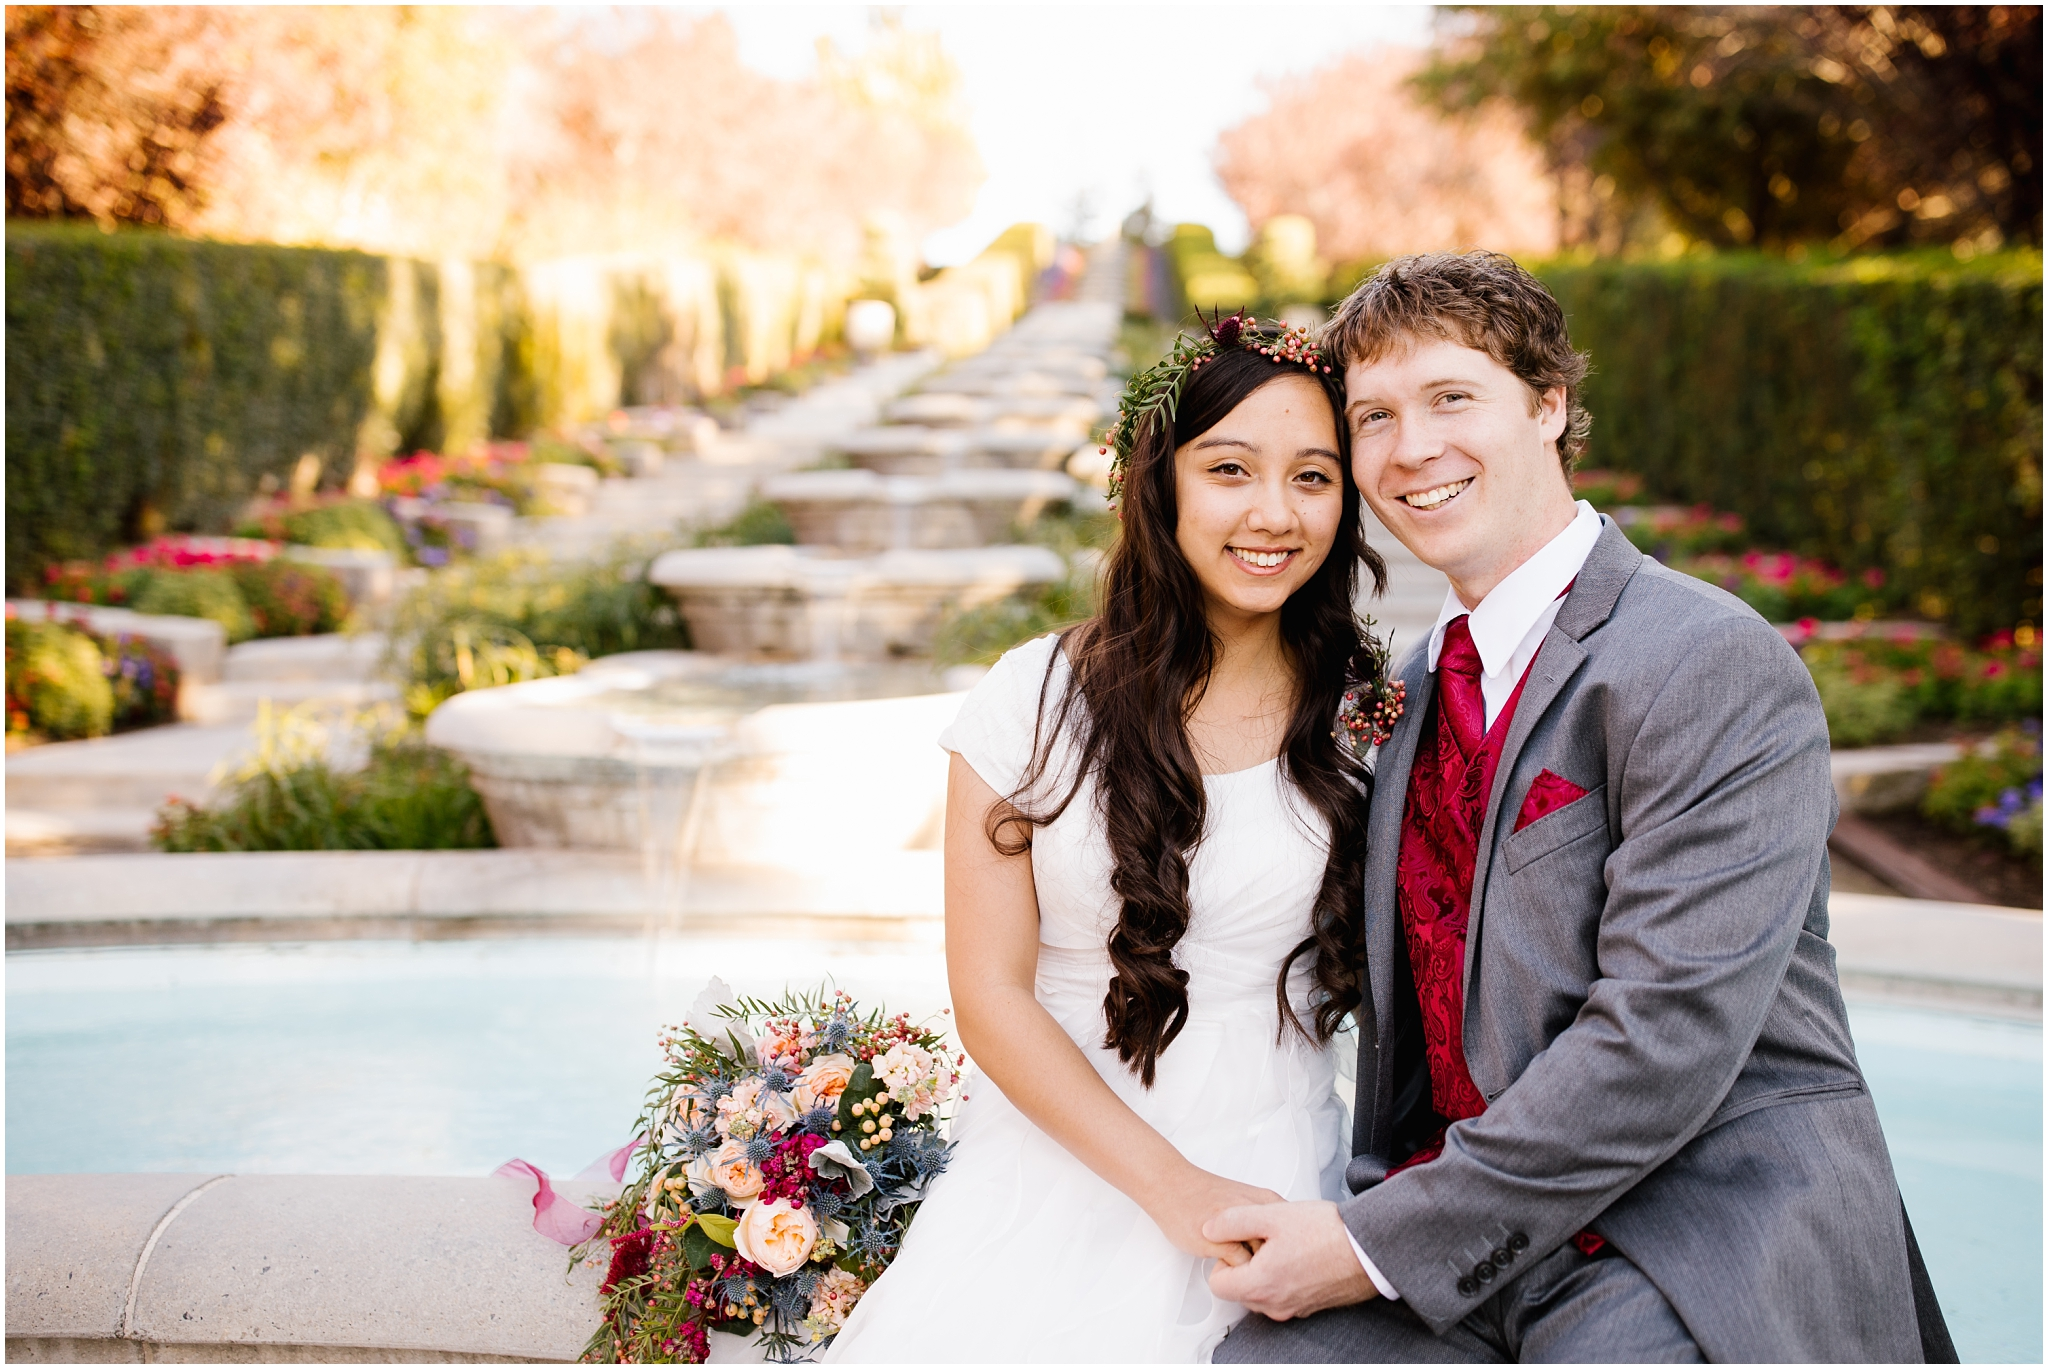 JB-Bridals-120_Lizzie-B-Imagery-Utah-Wedding-Photographer-Utah-County-Thanksgiving-Point-Ashton-Gardens.jpg